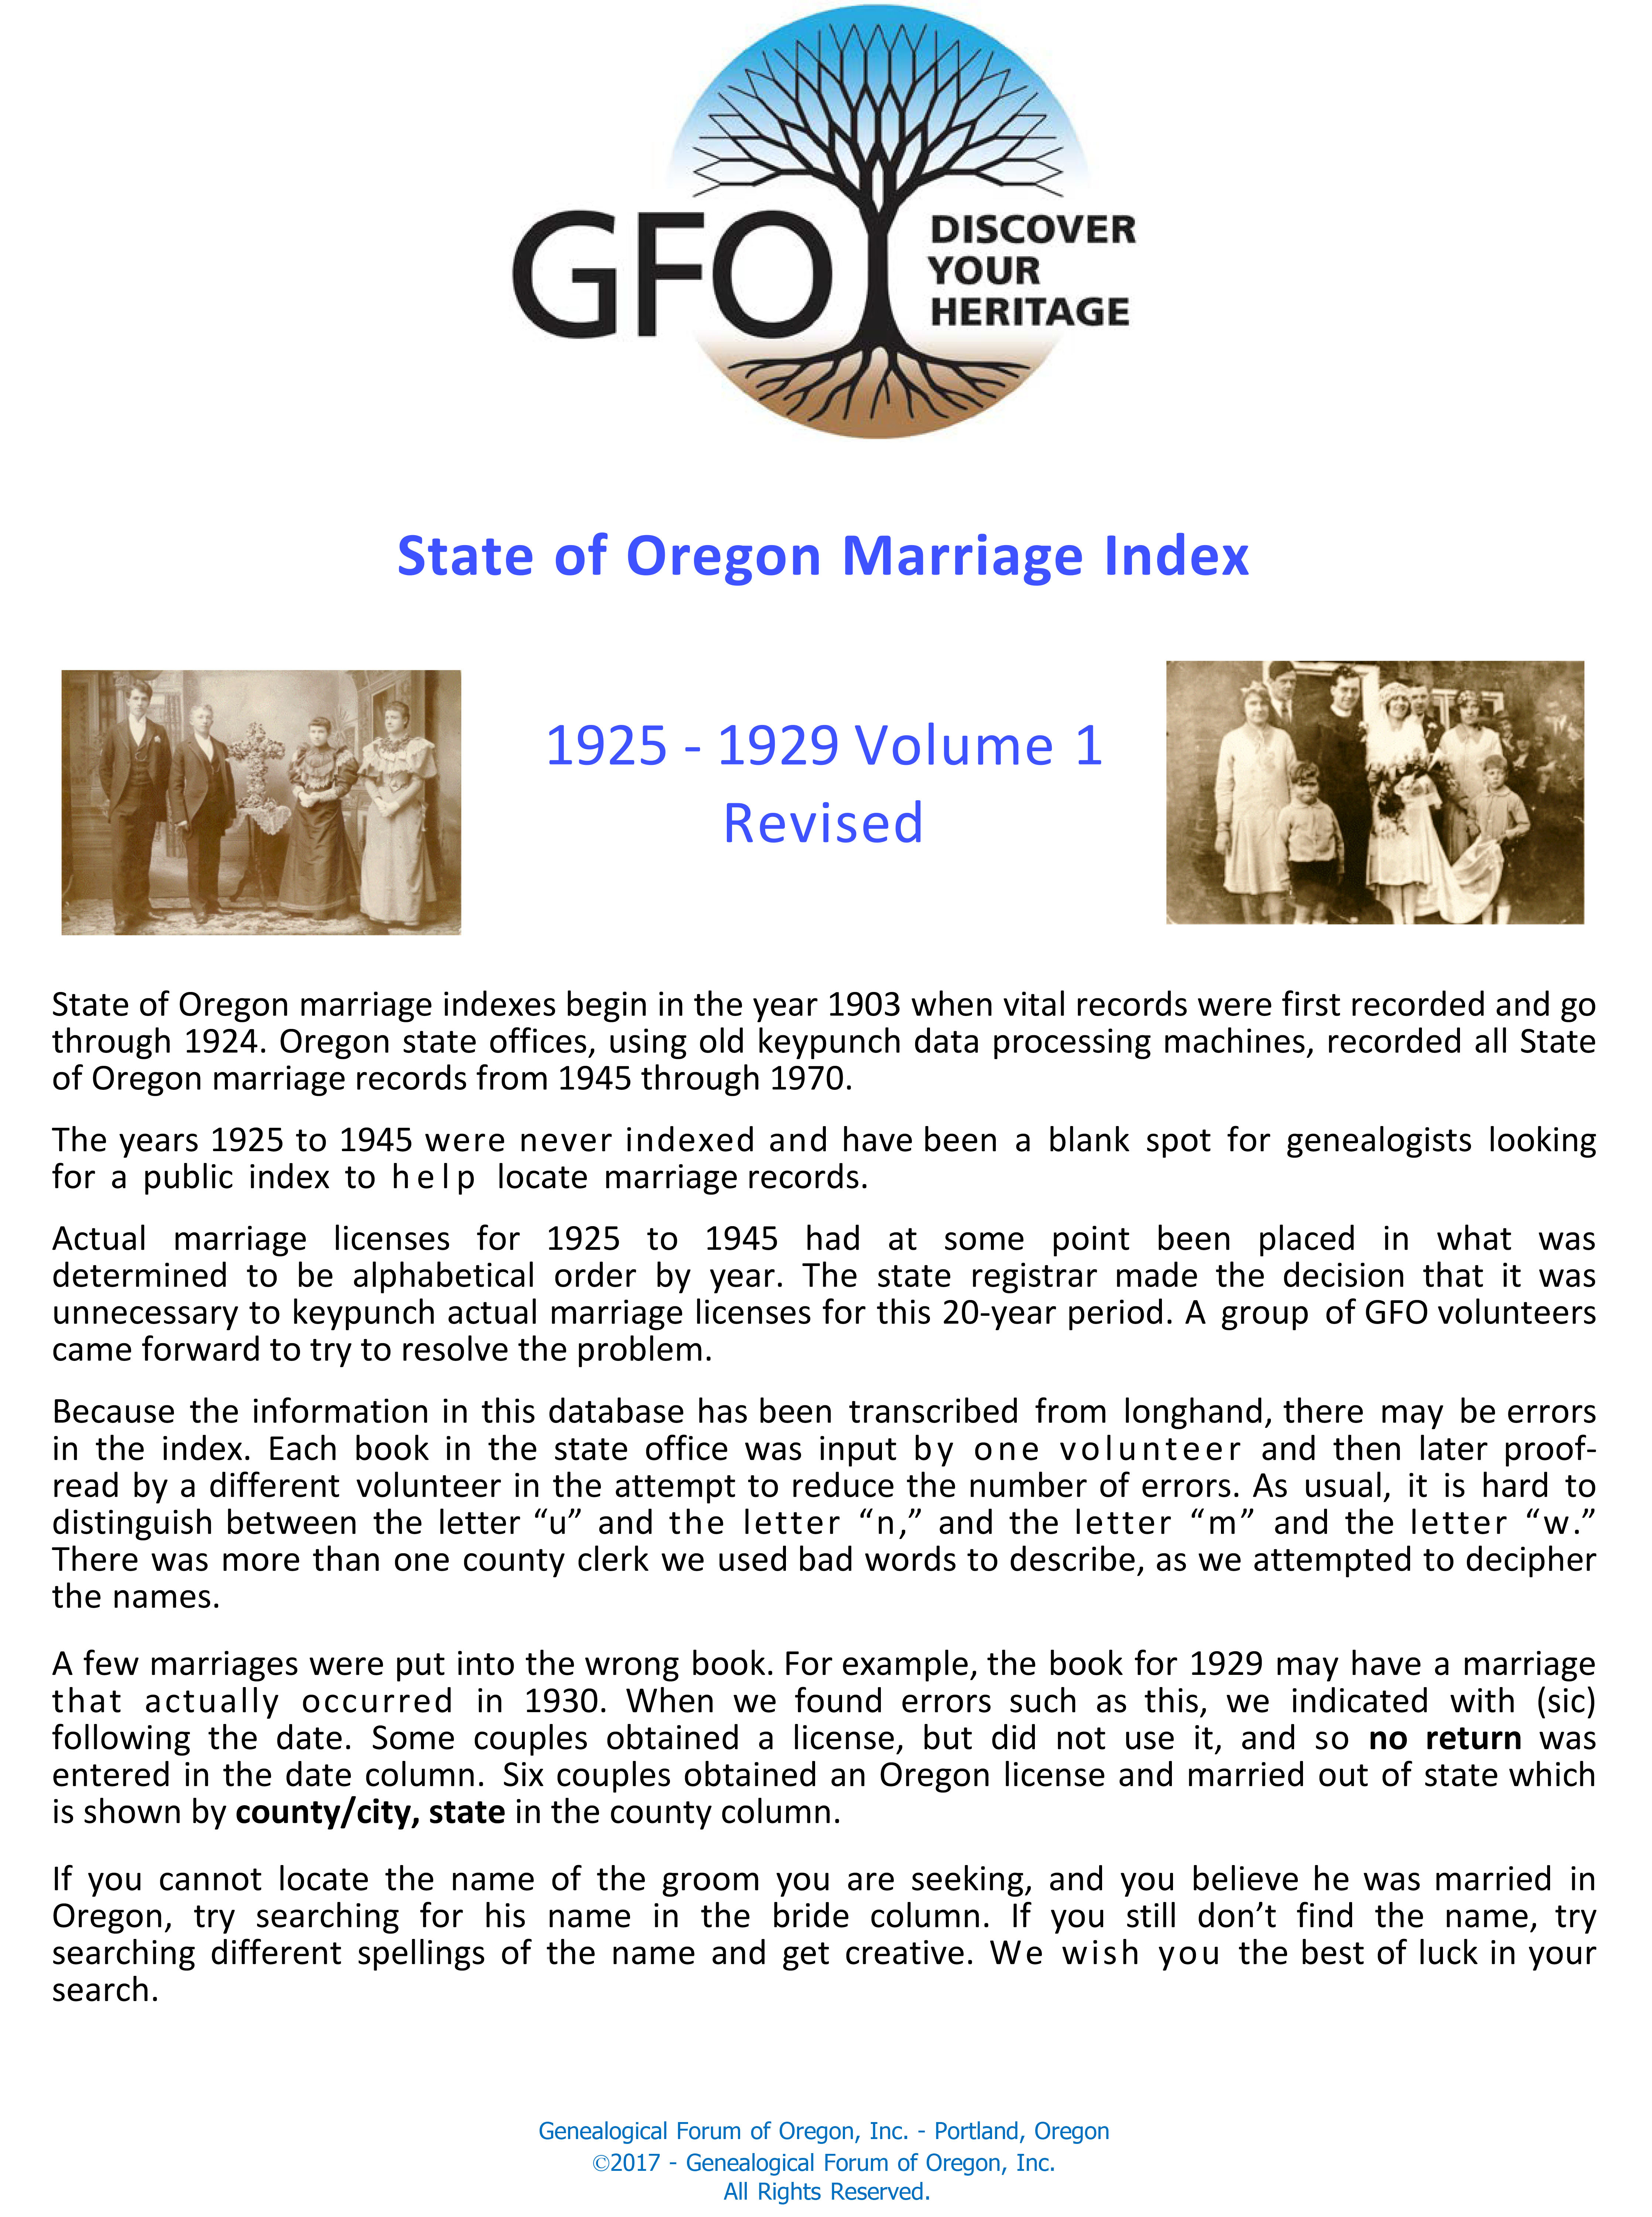 State of Oregon Marriage Index, 1930-1934 (Vol 2 of 4)